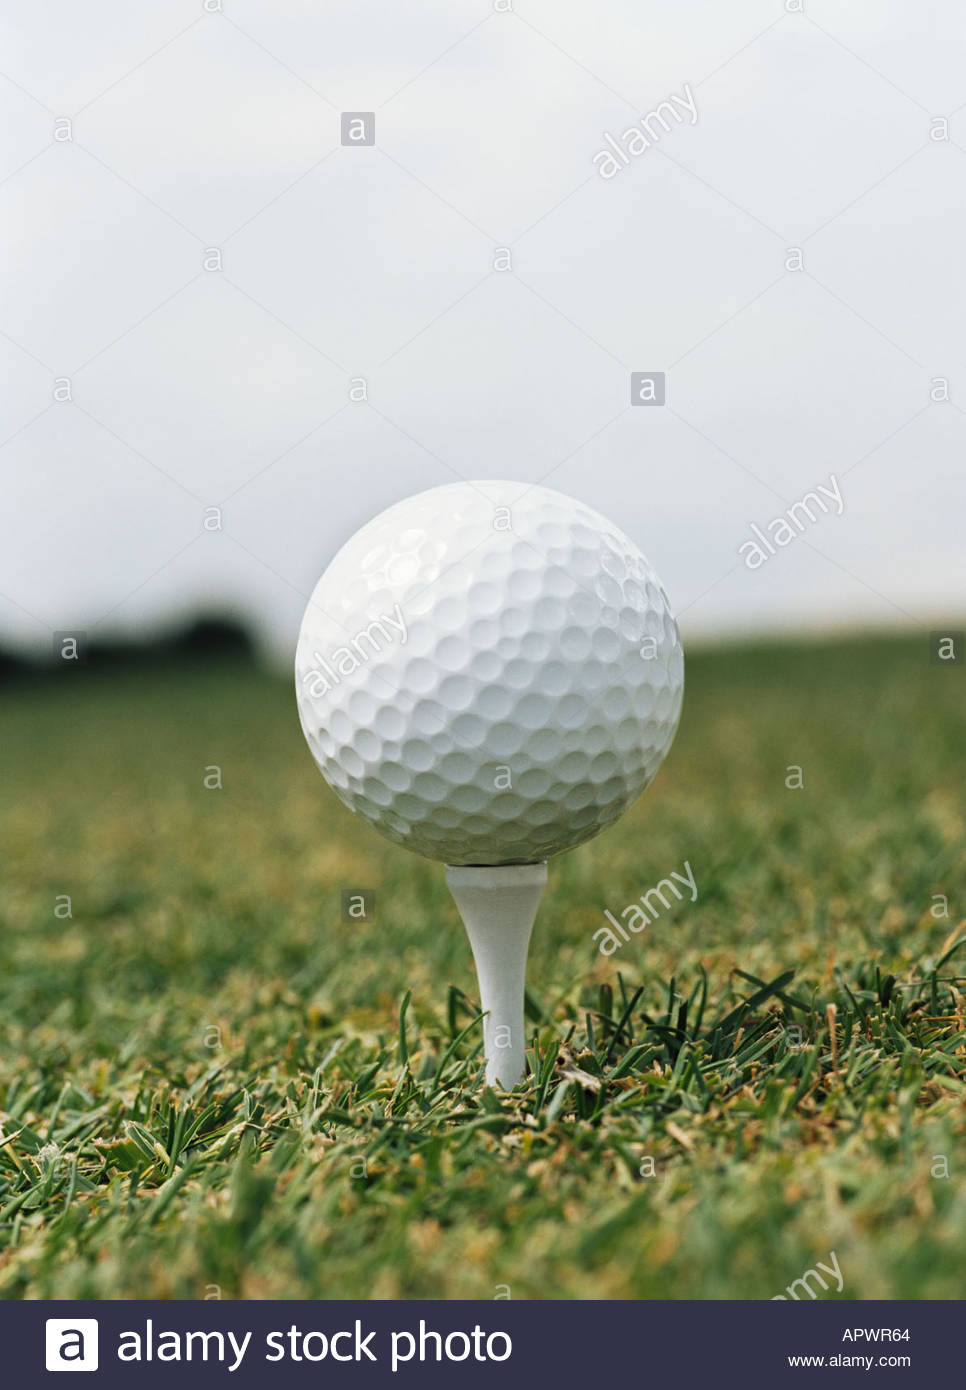 Golf ball on tee - Stock Image